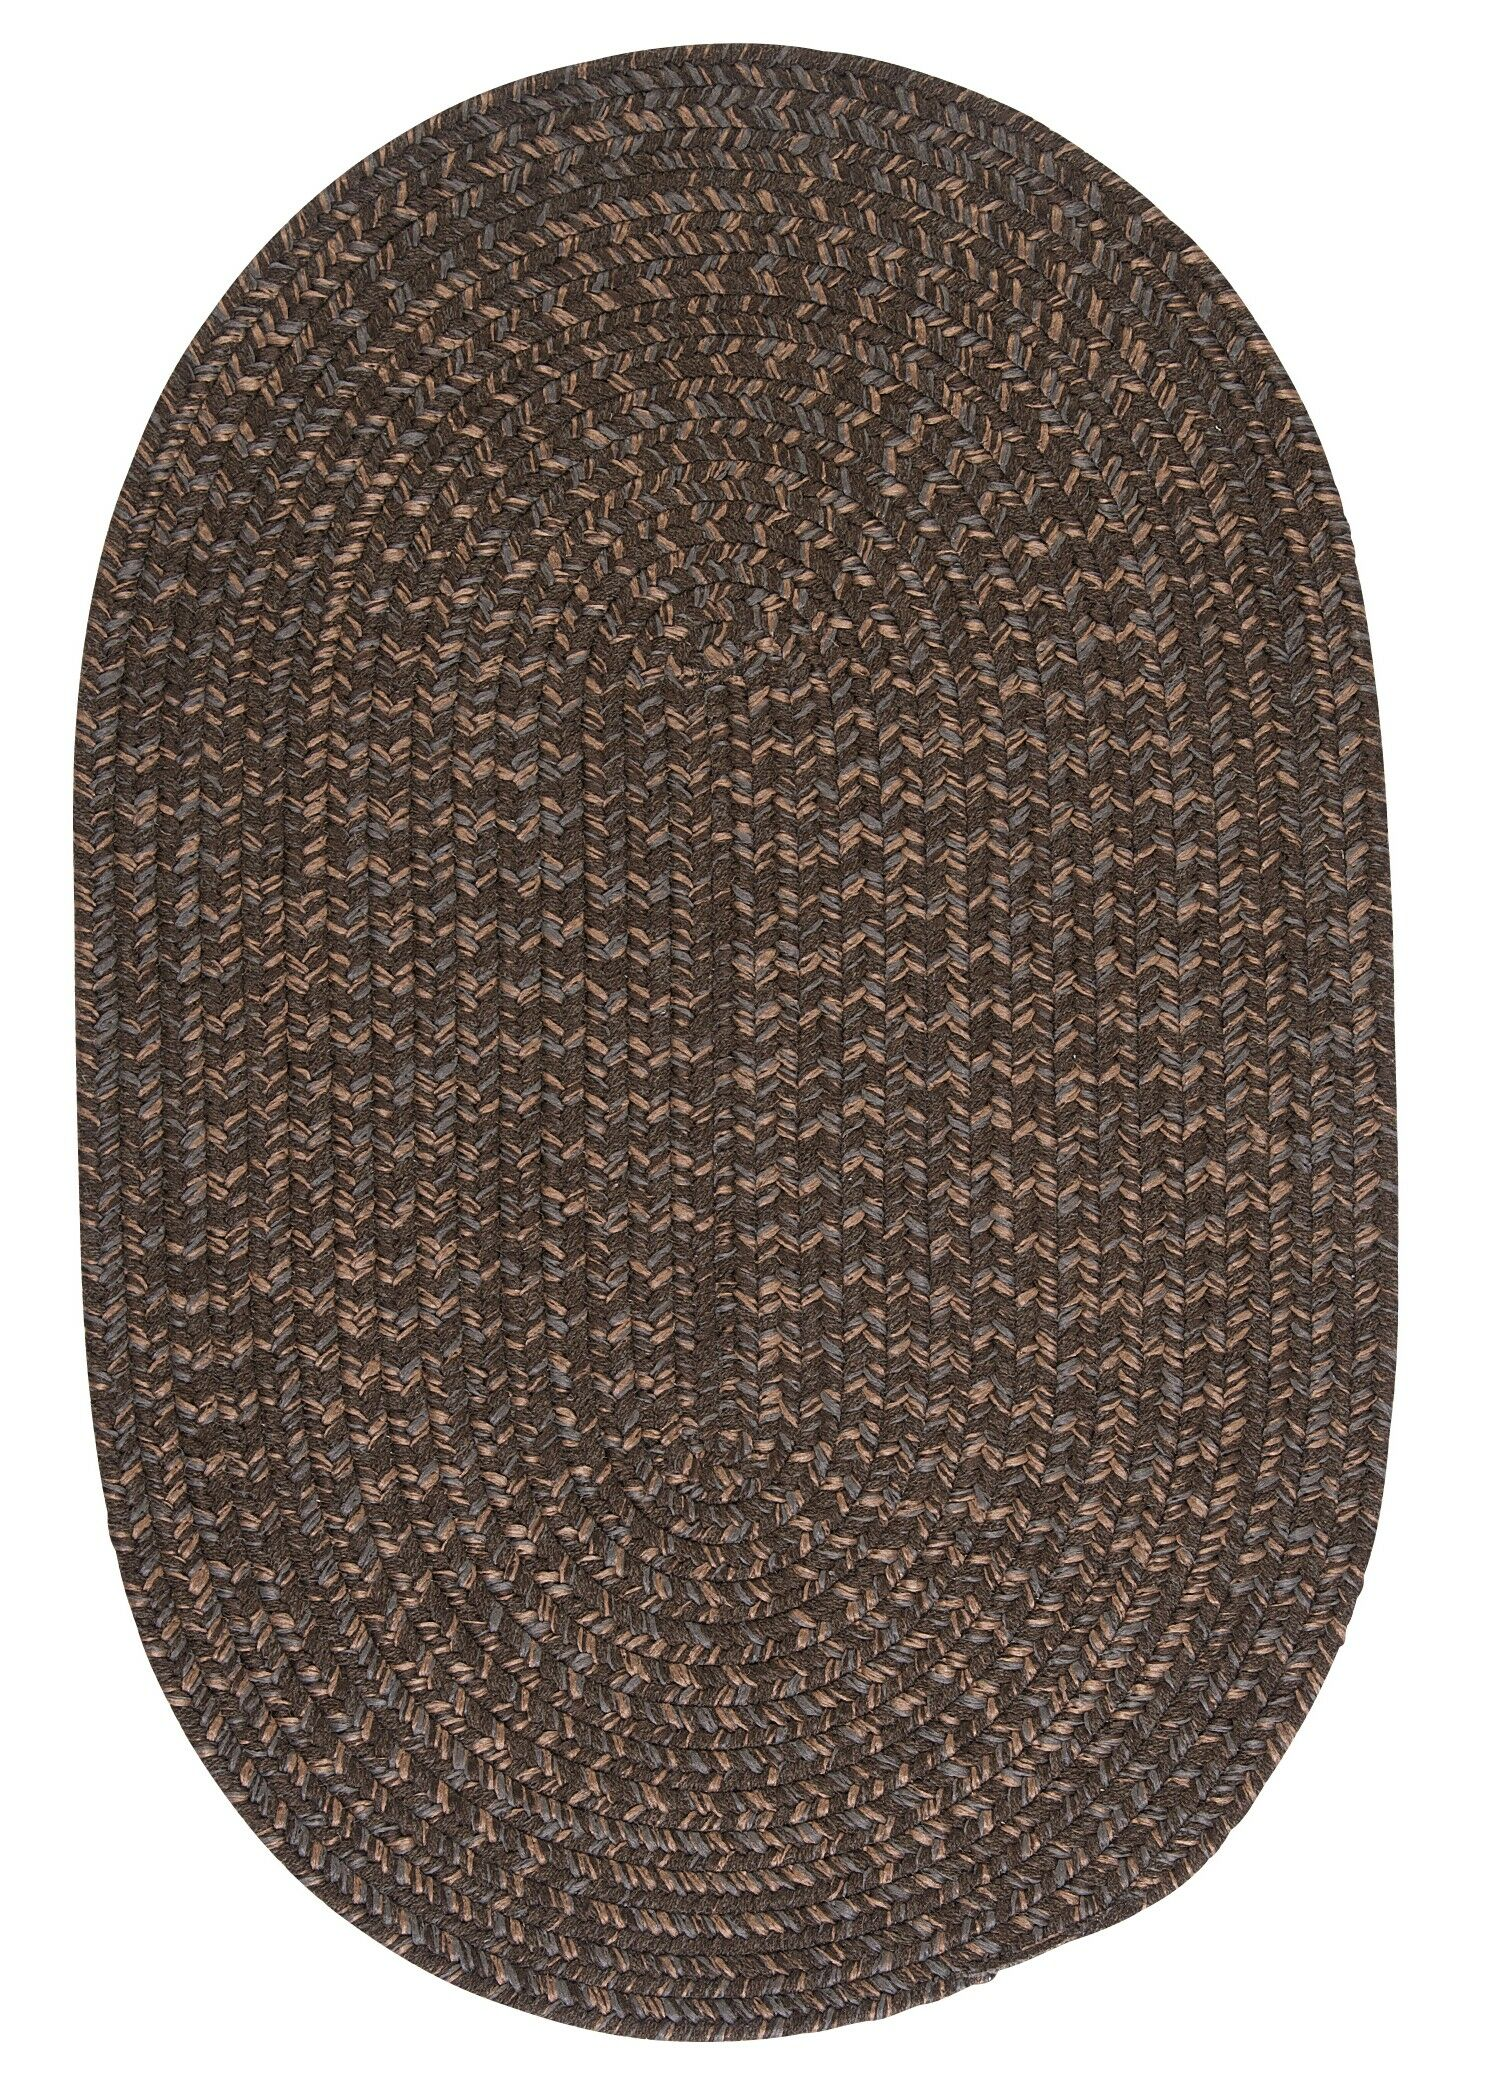 Abey Bark Brown/Tan Area Rug Rug Size: Oval 7' x 9'